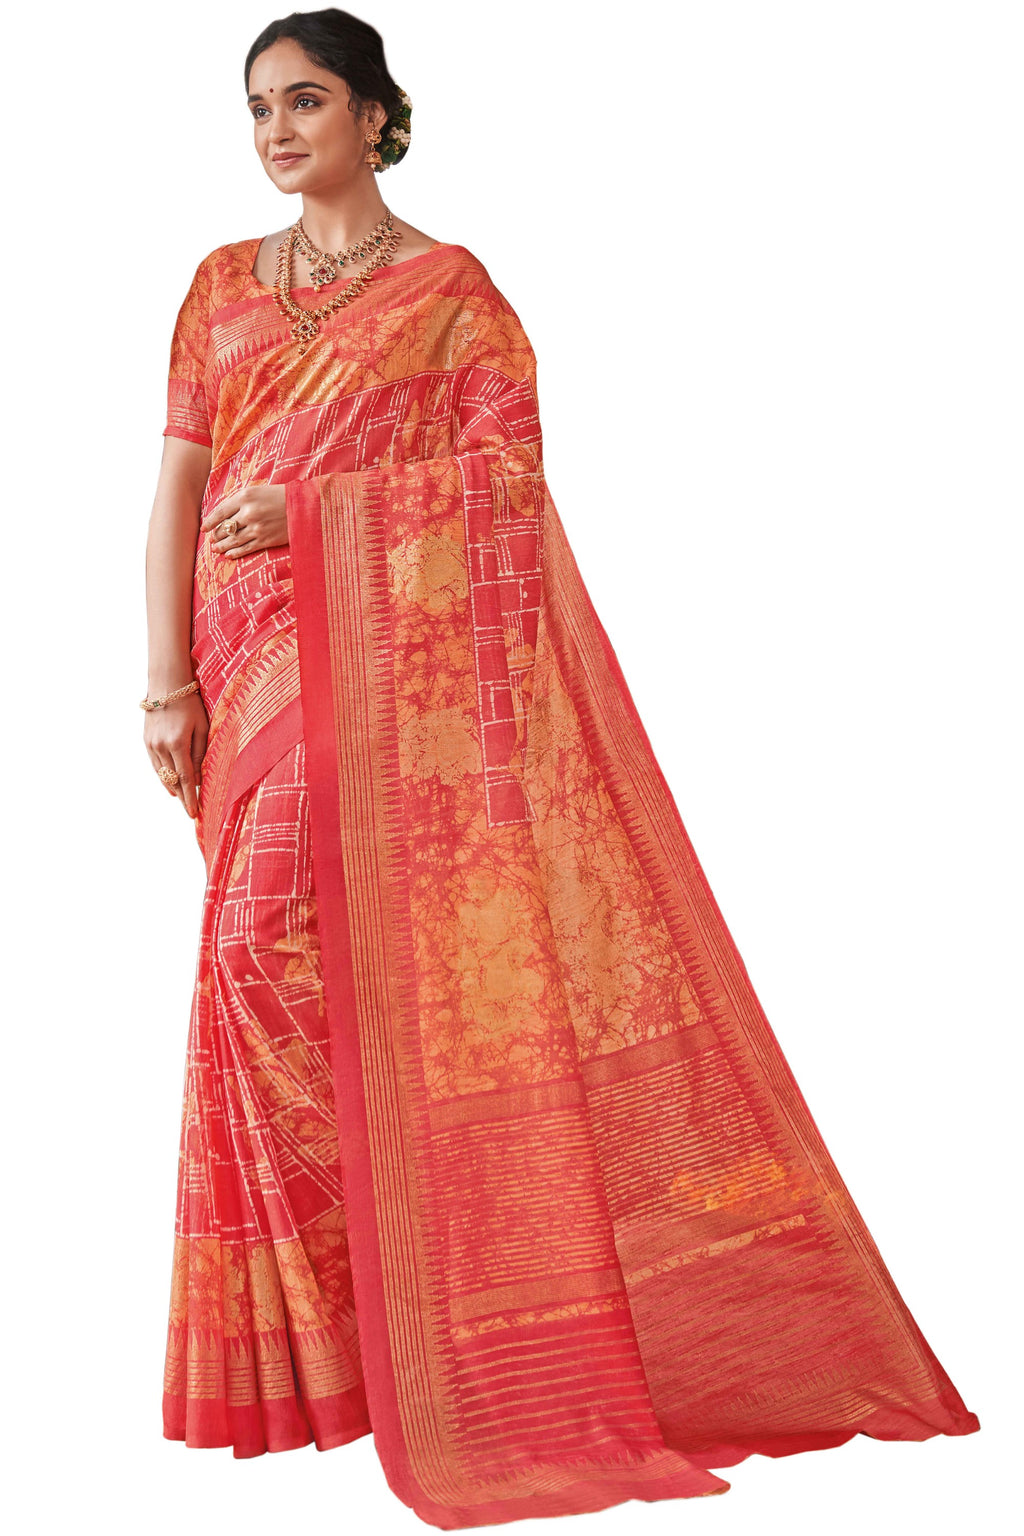 Pink Color Bhagalpuri Festive & Party Wear Sarees NYF-8656